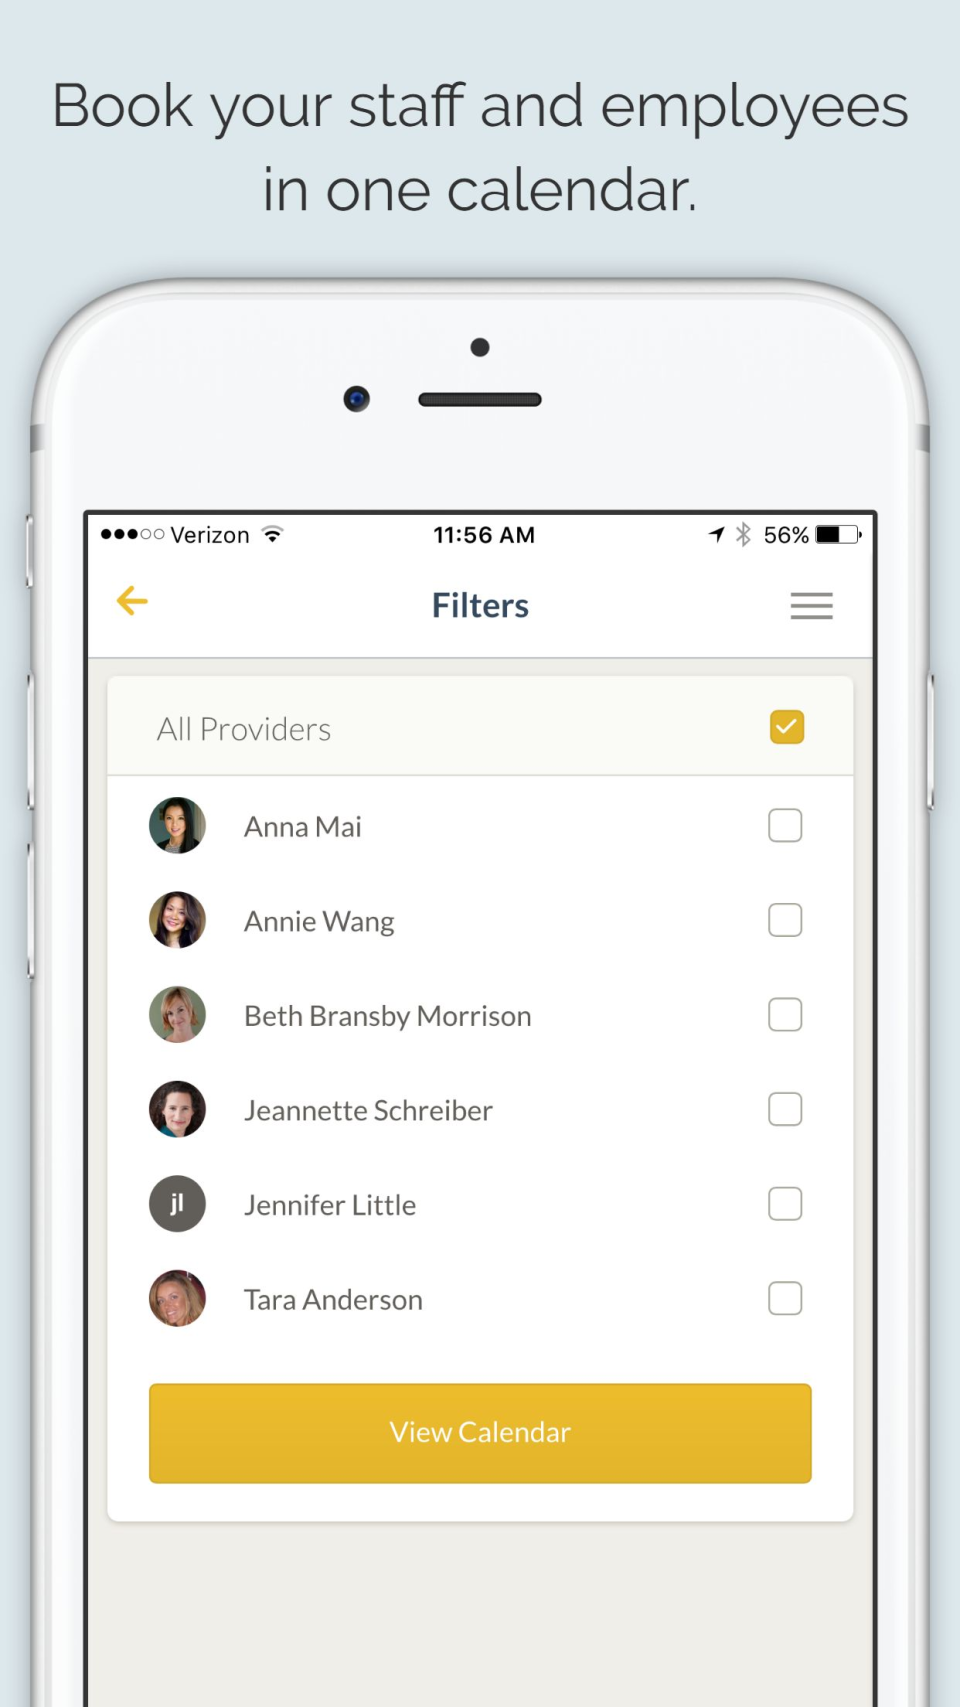 Add employees to the calendar for instant scheduling